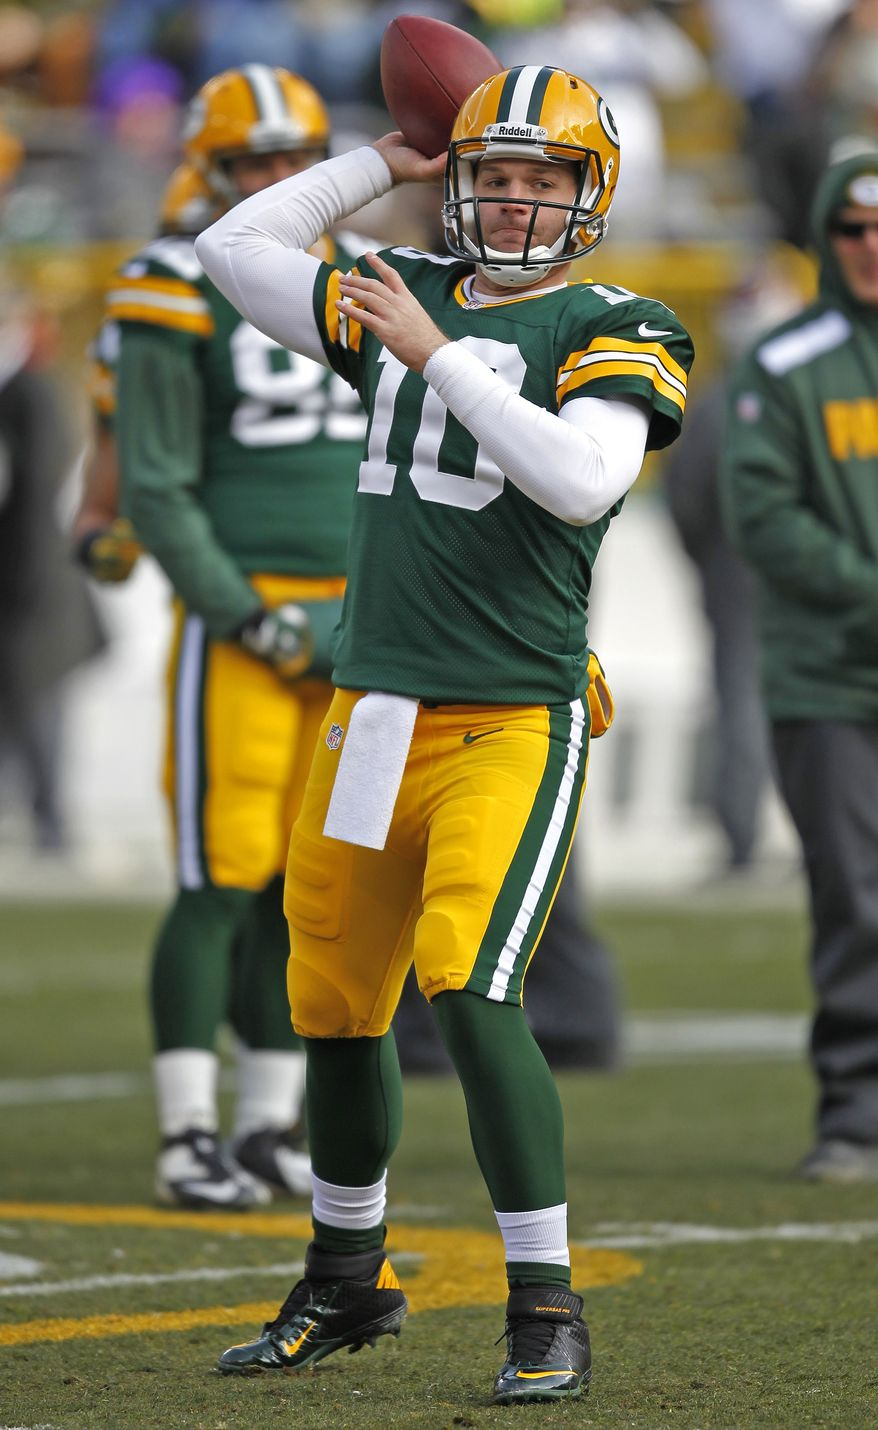 Green Bay Packers quarterback Matt Flynn throws passes in warm ups prior to an NFL football game against the Minnesota Vikings Sunday, Nov. 24, 2013, in Green Bay, Wis. (AP Photo/Matt Ludtke)